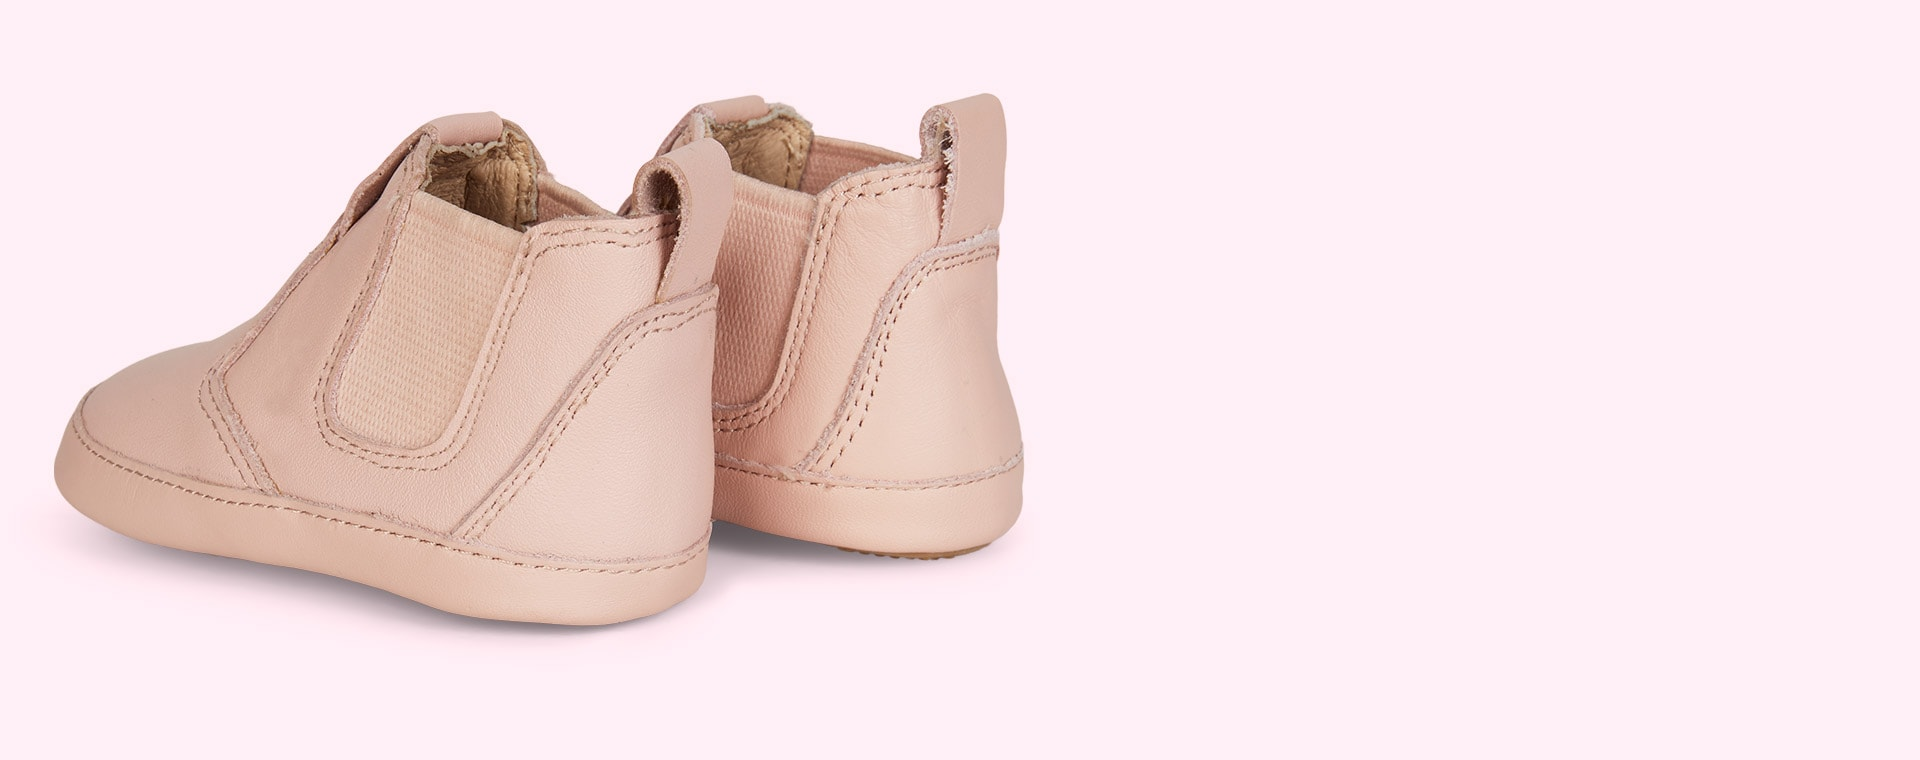 Powder Pink old soles Bambini Local Soft sole Boot